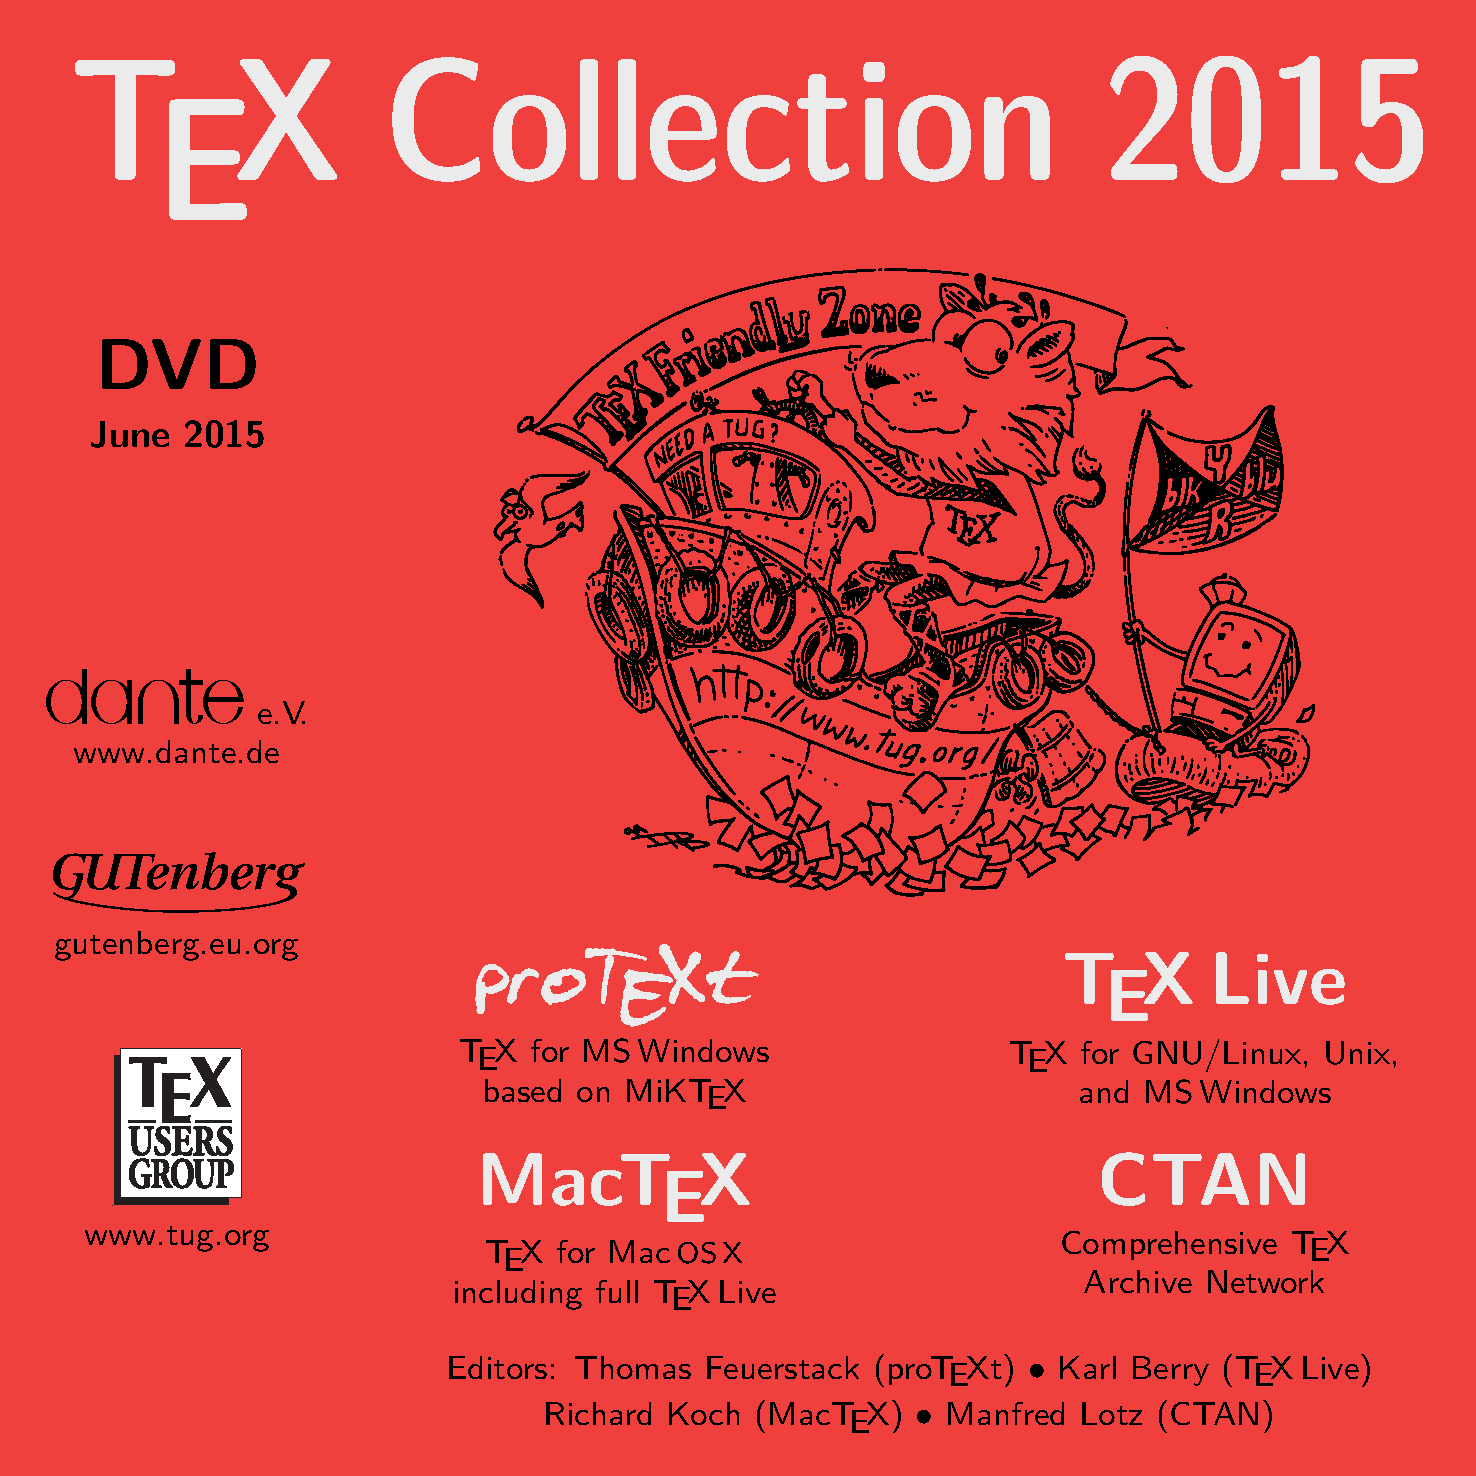 TeX Collection 2015